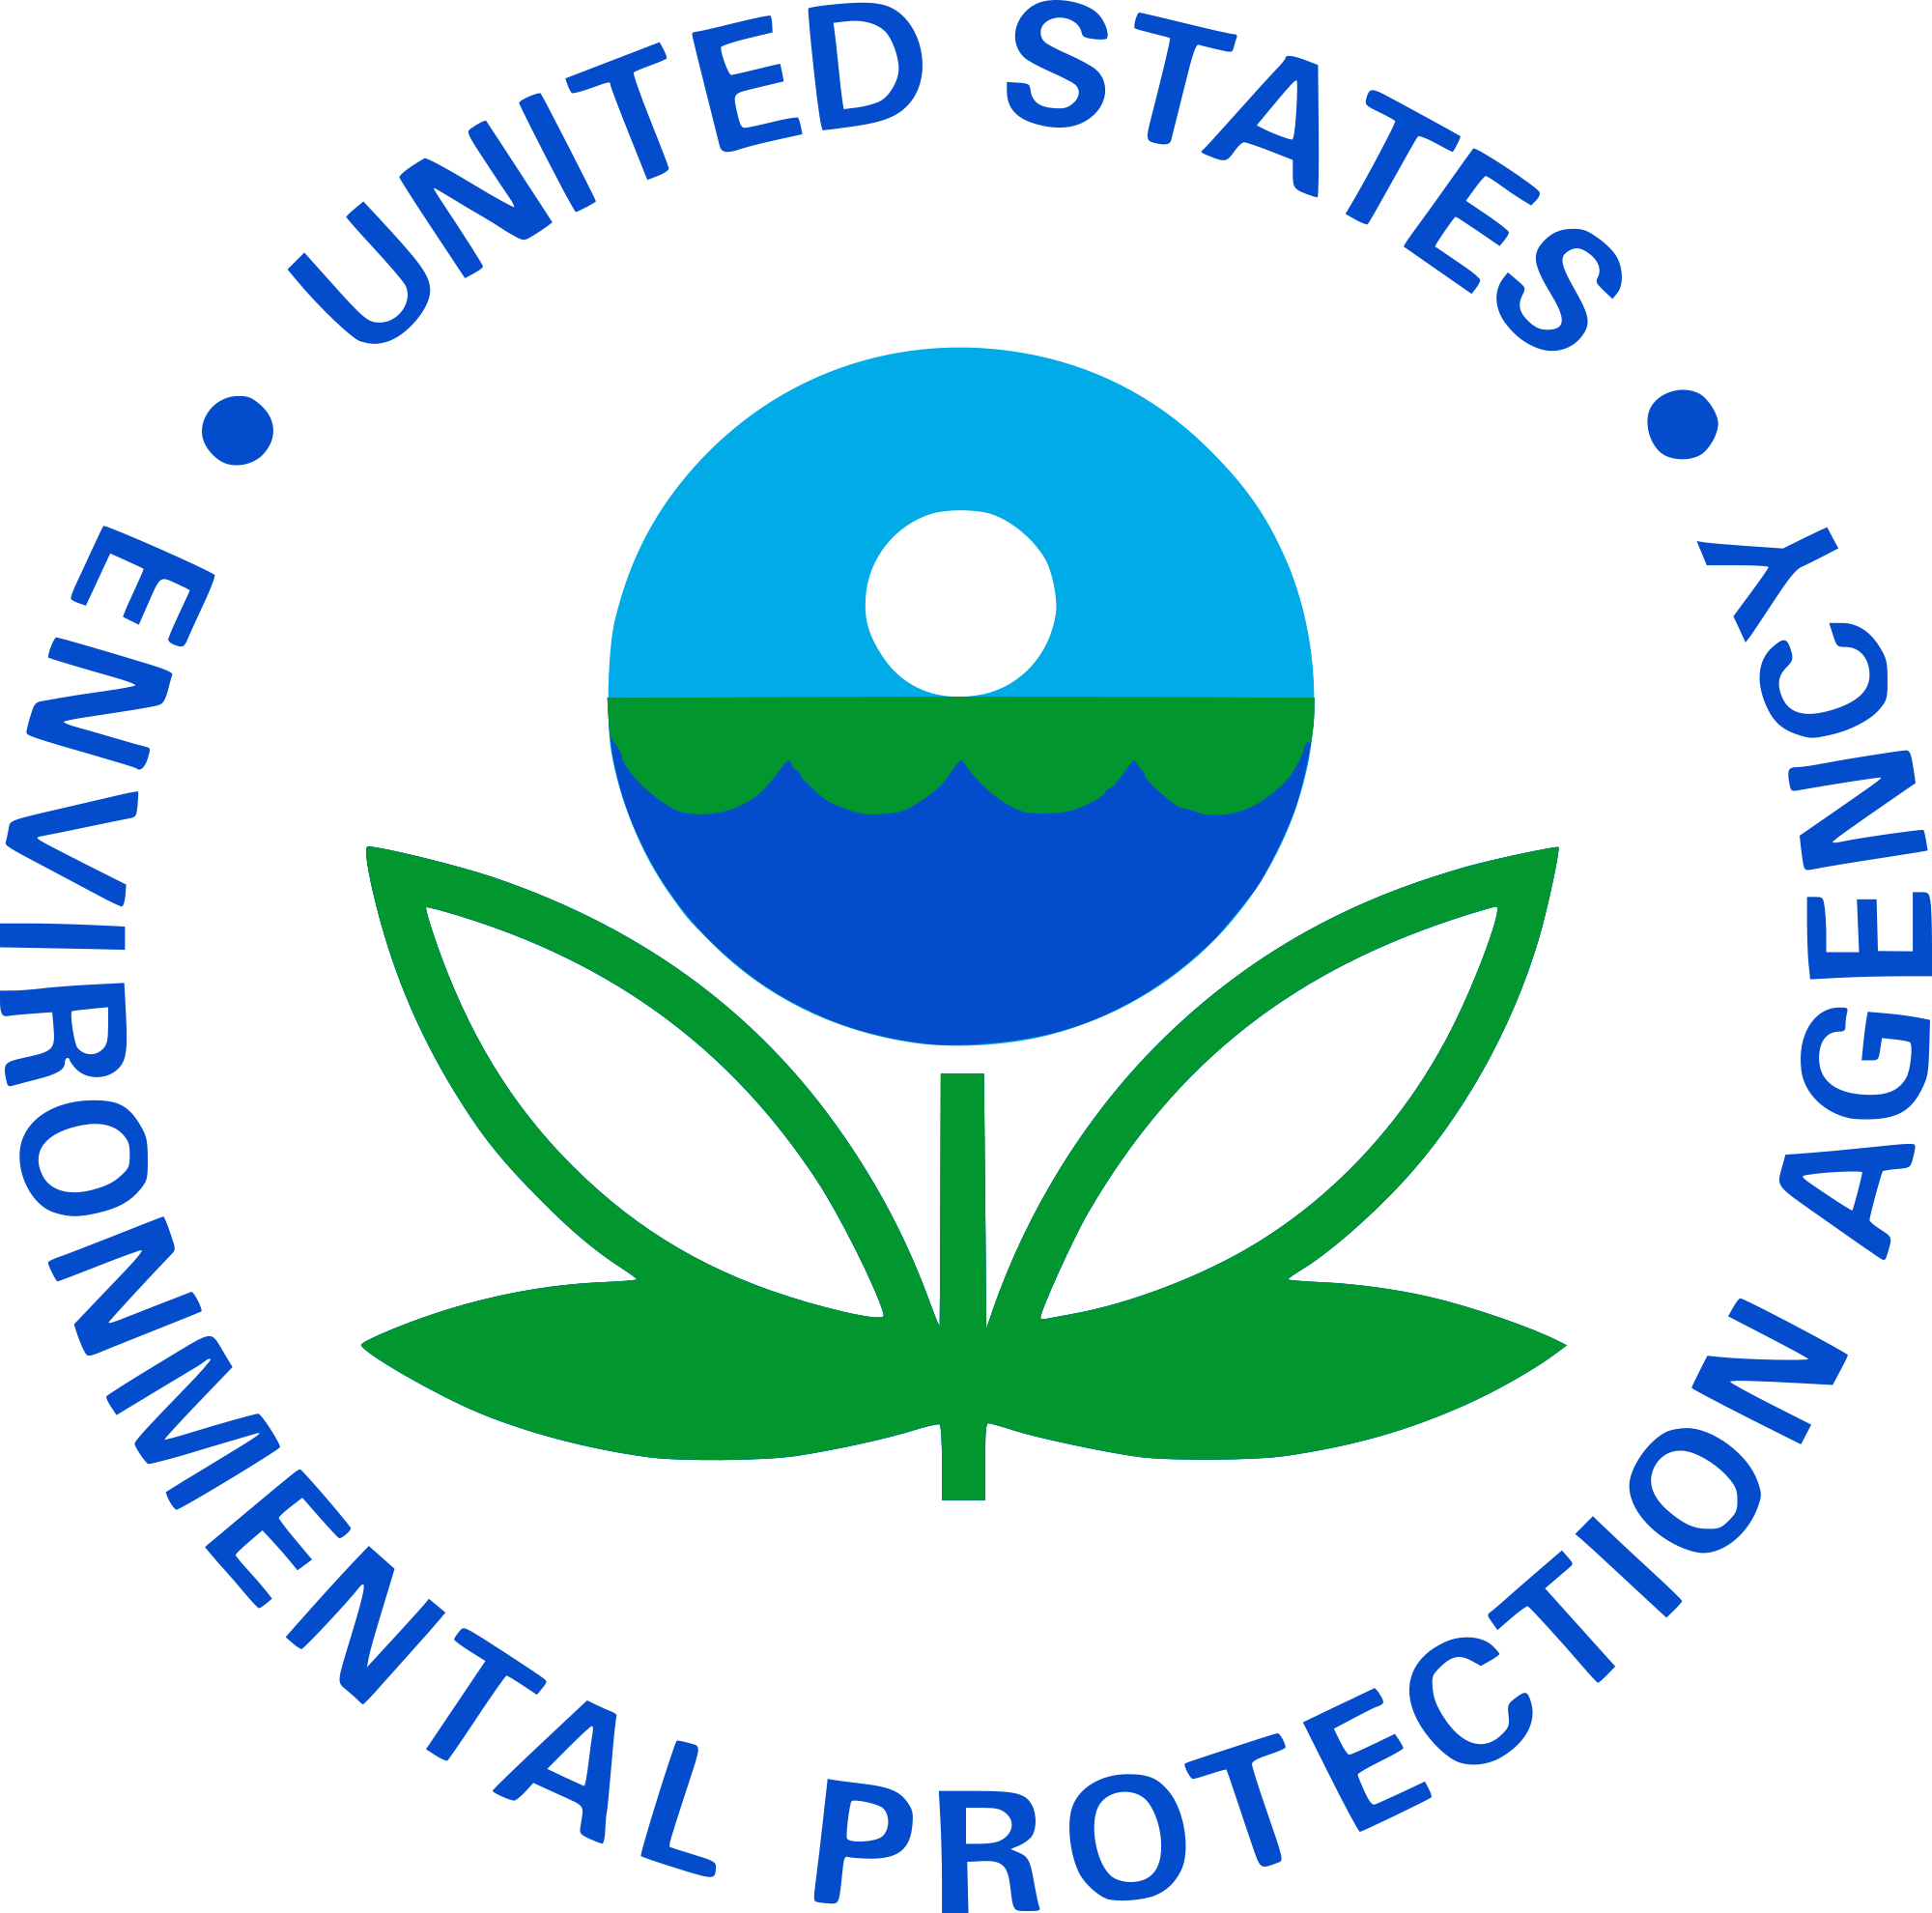 Predictive Enforcement of Pollution and Hazardous Waste Violations